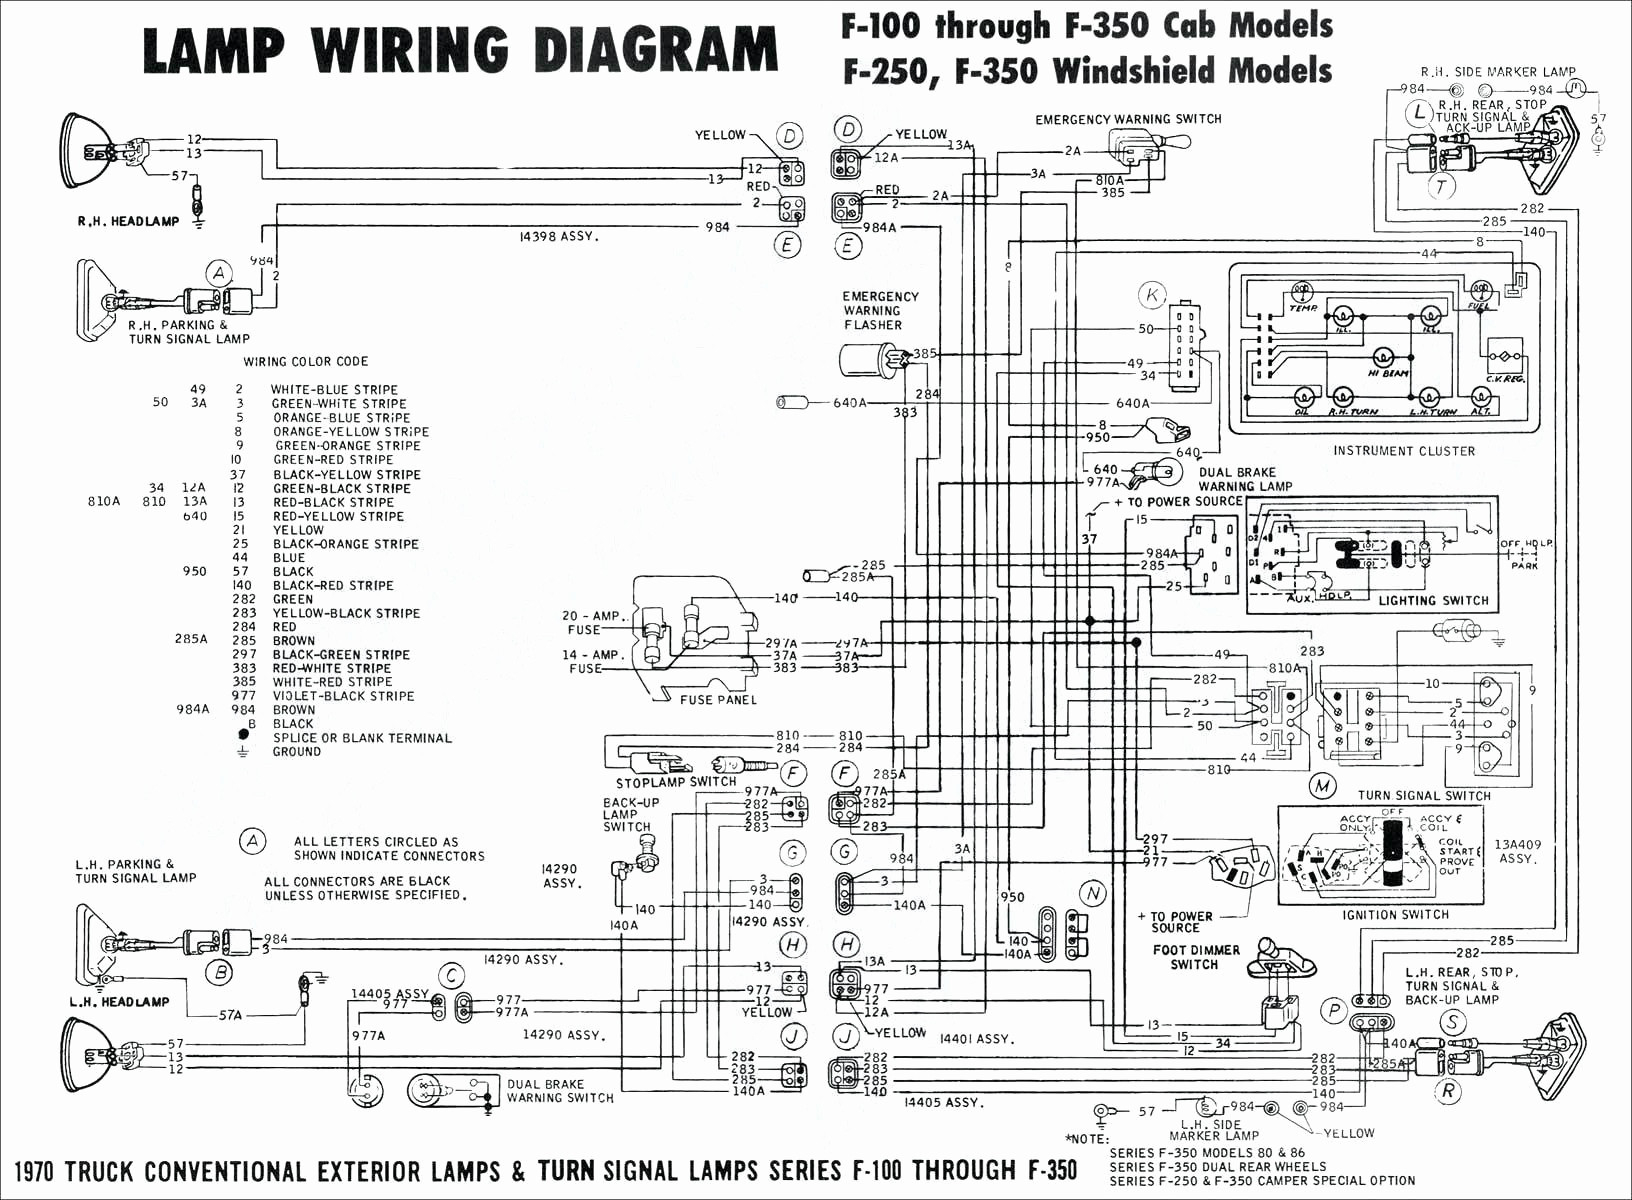 Wiring Diagram For A Pioneer Deh X6600Bt | Wiring Diagram - Pioneer Deh X6600Bt Wiring Diagram